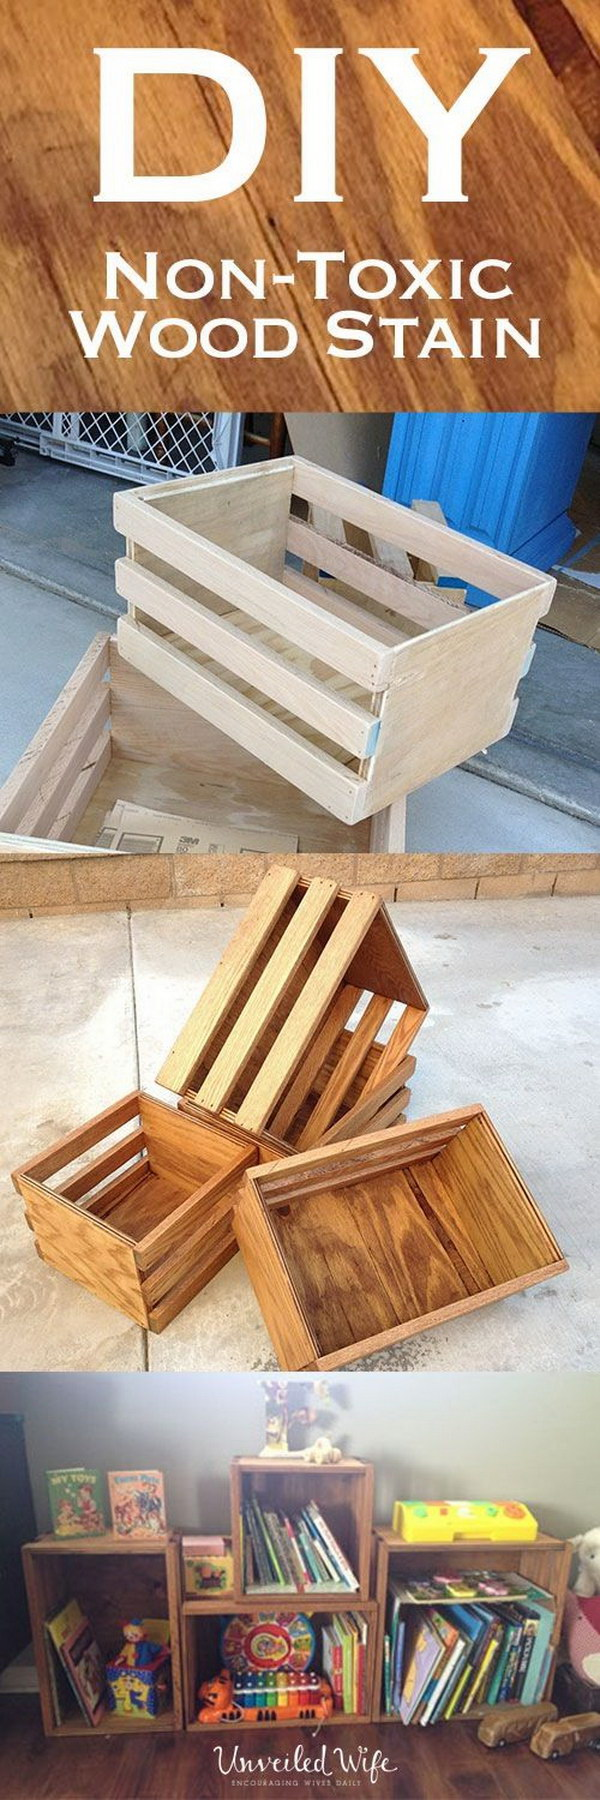 Stained Crate Book Shelves.